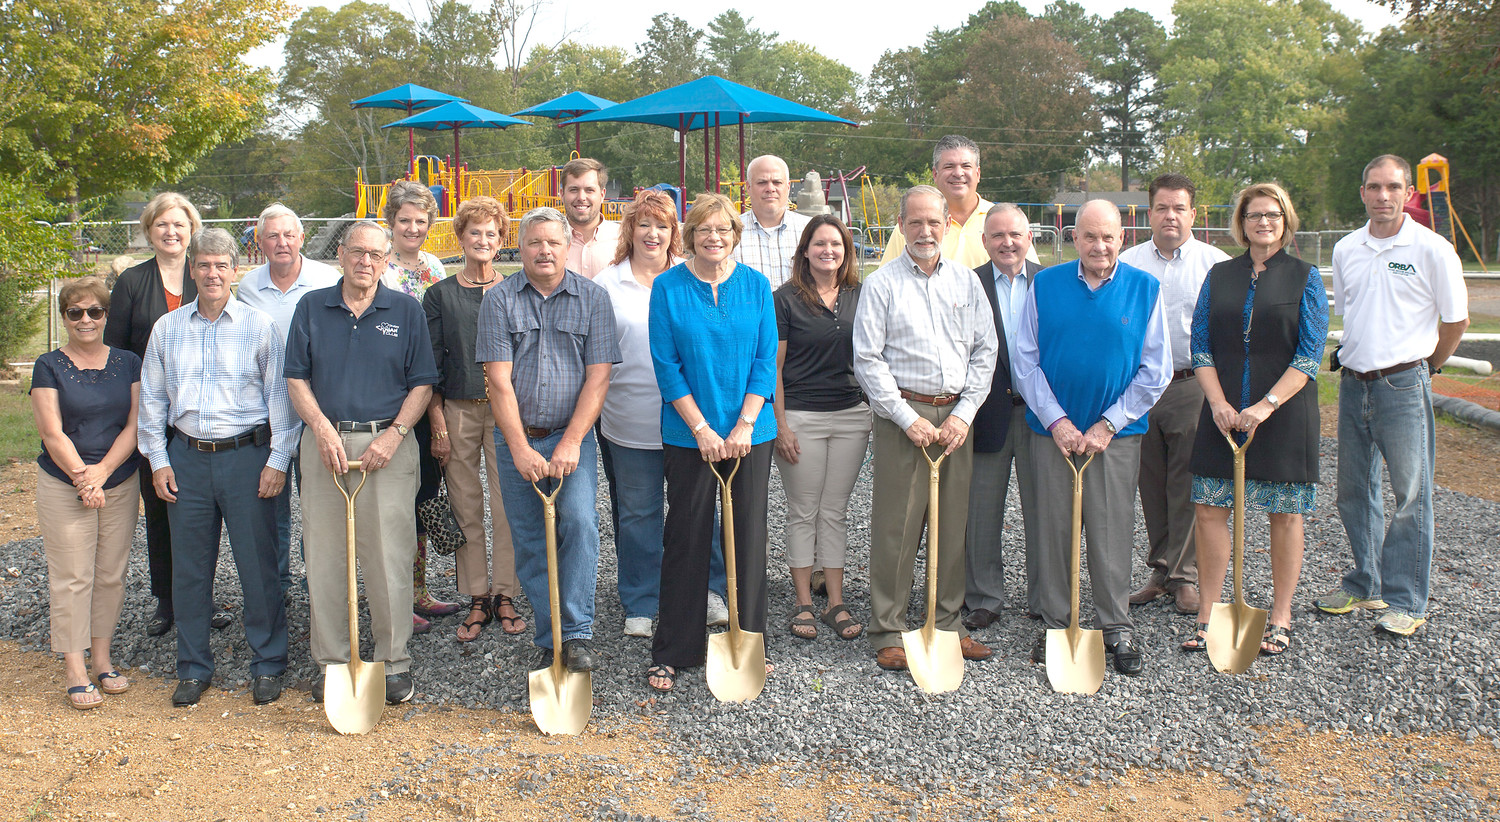 A LARGE NUMBER of Cleveland and Bradley County officials and sponsors were present to celebrate the groundbreaking of the Civitan Playground Project on Tuesday.  The project is focused on building a brand new handicapped-accessible restroom facility with two covered pavilion areas also planned.  From left are Patti Petitt, Diana Jackson, Bill Winters, Jerry Franitza, Dave Cummings, chairman of the playground committee, Rachel Brannen, Beth Woodard, Dennis Epperson, Blake Allison, Peaches Searles, Joan Brown, Brian Gilbert, Charlotte Peak Jones, Bradley County Mayor D. Gary Davis, Tom Cassada, Rep. Kevin Brooks, Cleveland Mayor Tom Rowland, Jeff Cochran, Teresa Davis and Chad Dean.